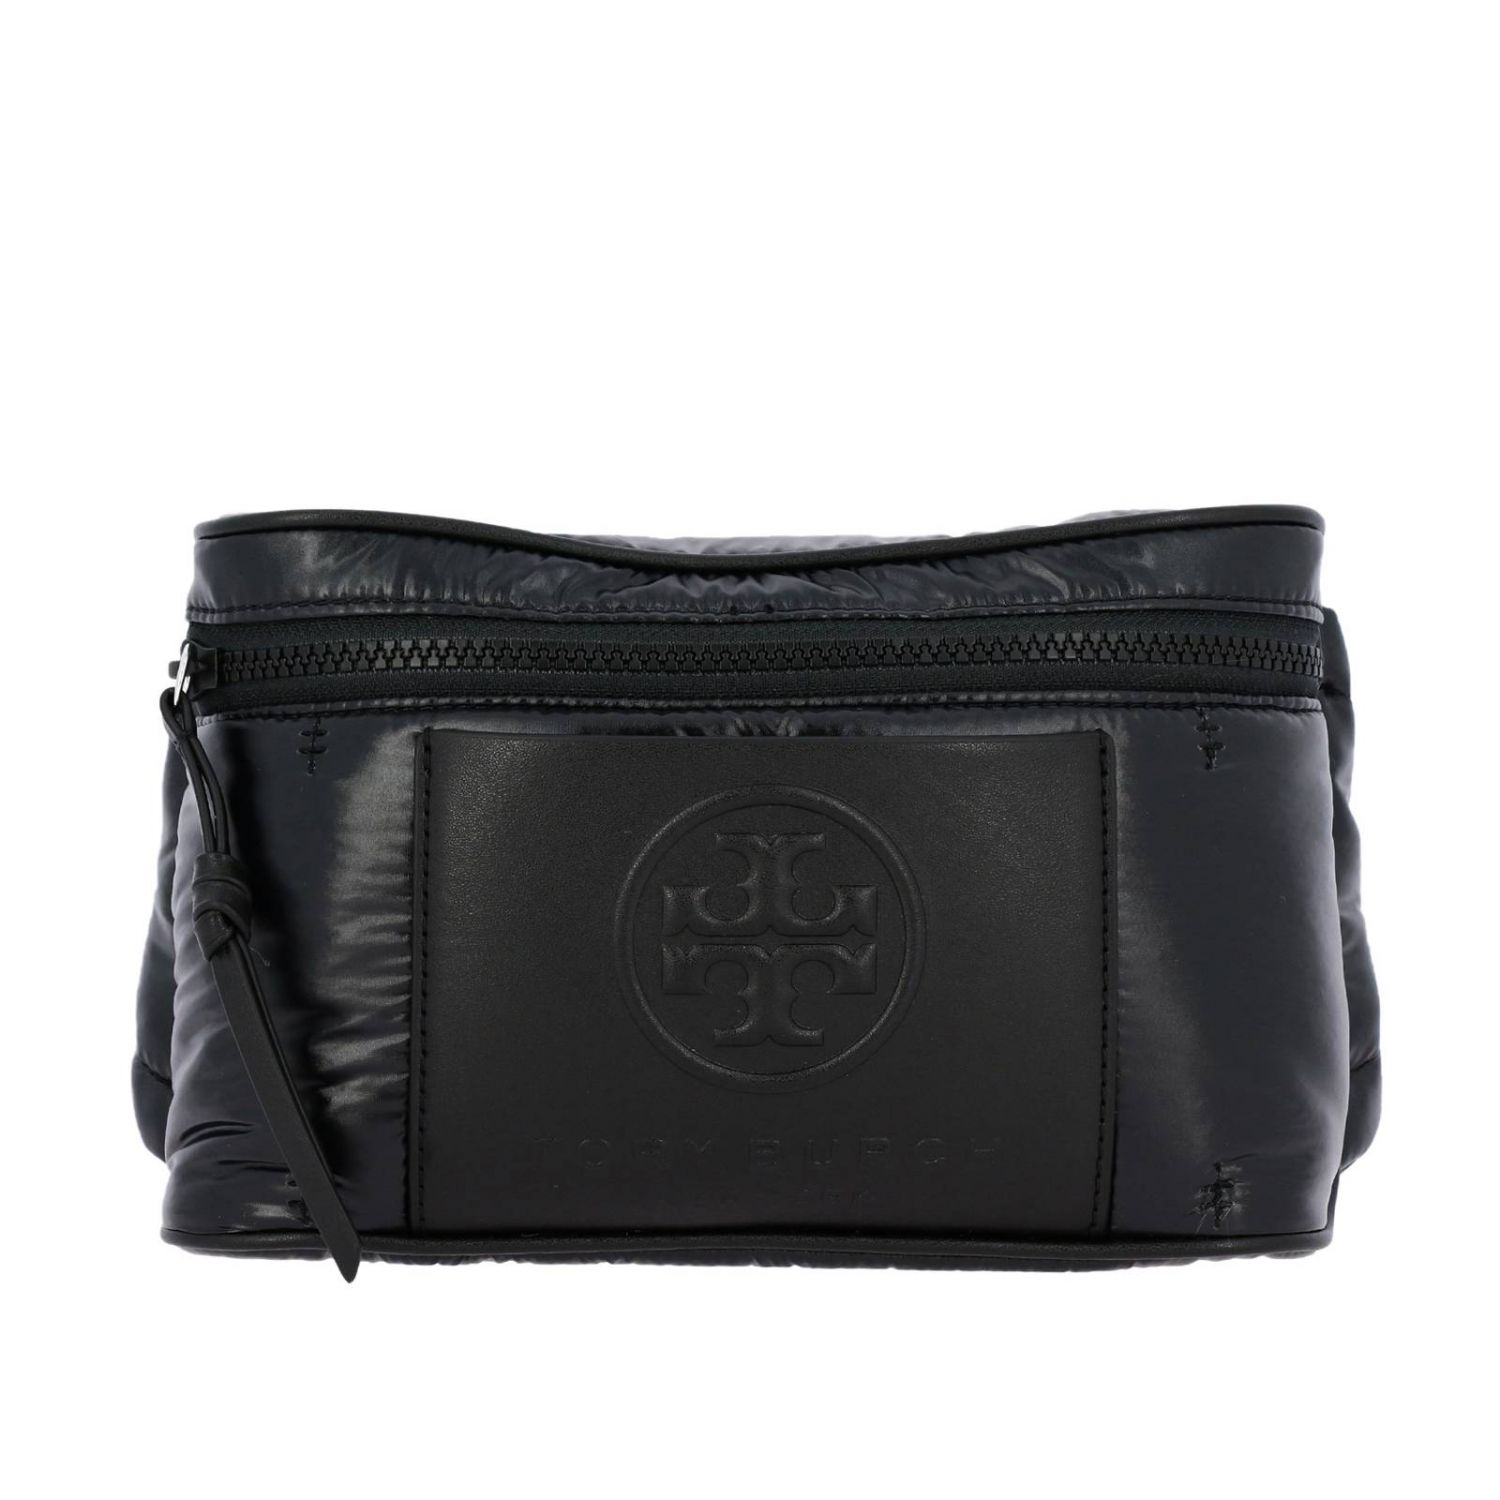 Belt bag women Tory Burch black 1